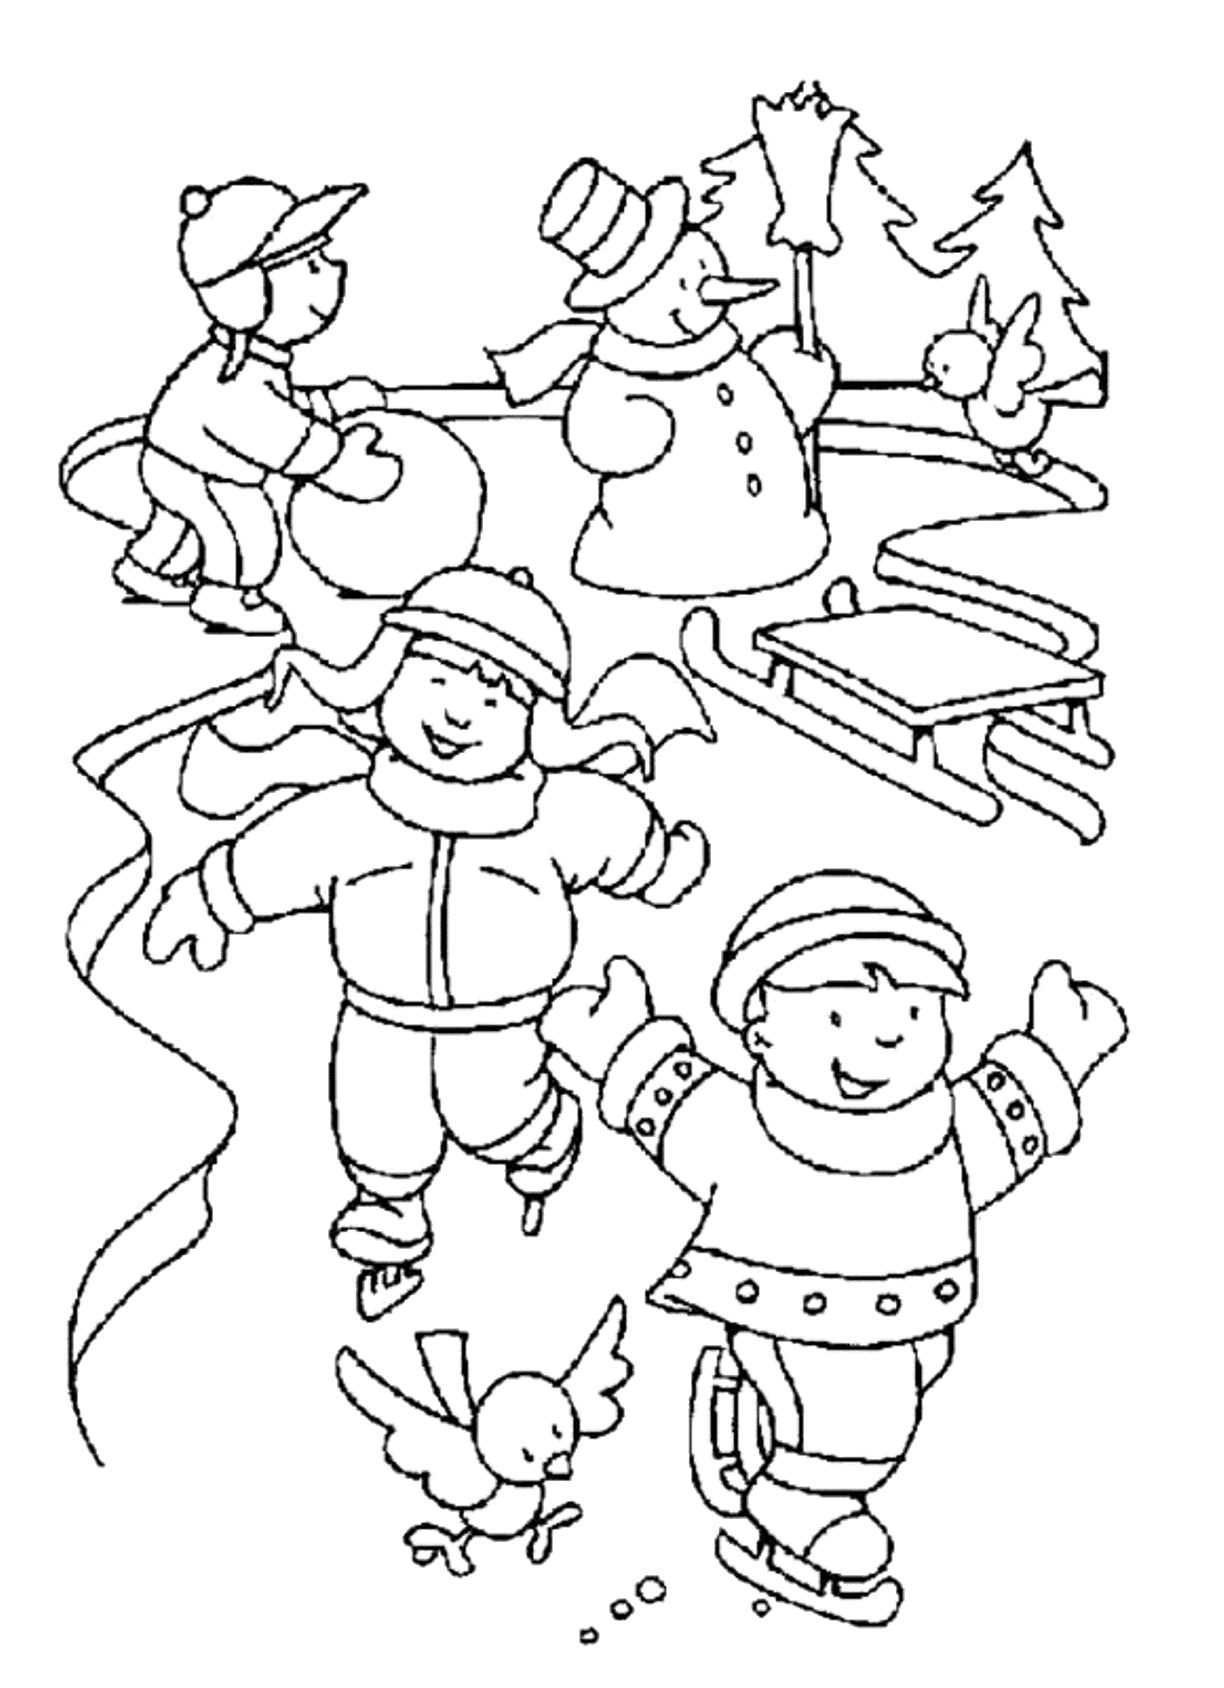 1224x1688 Printable Coloring Pages Zentangle Figure Skating Coloring